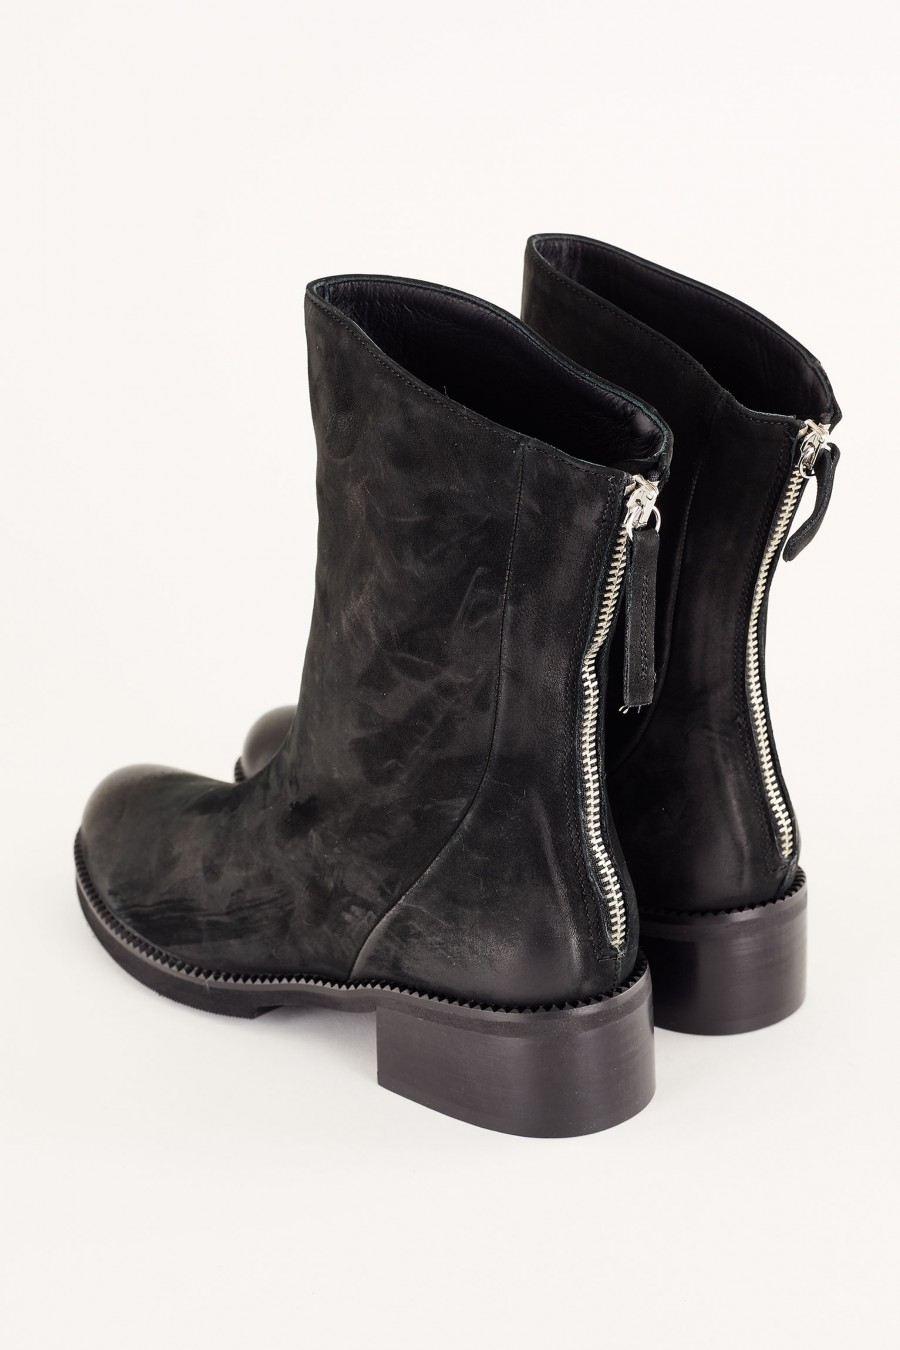 casual boots with zip at the back